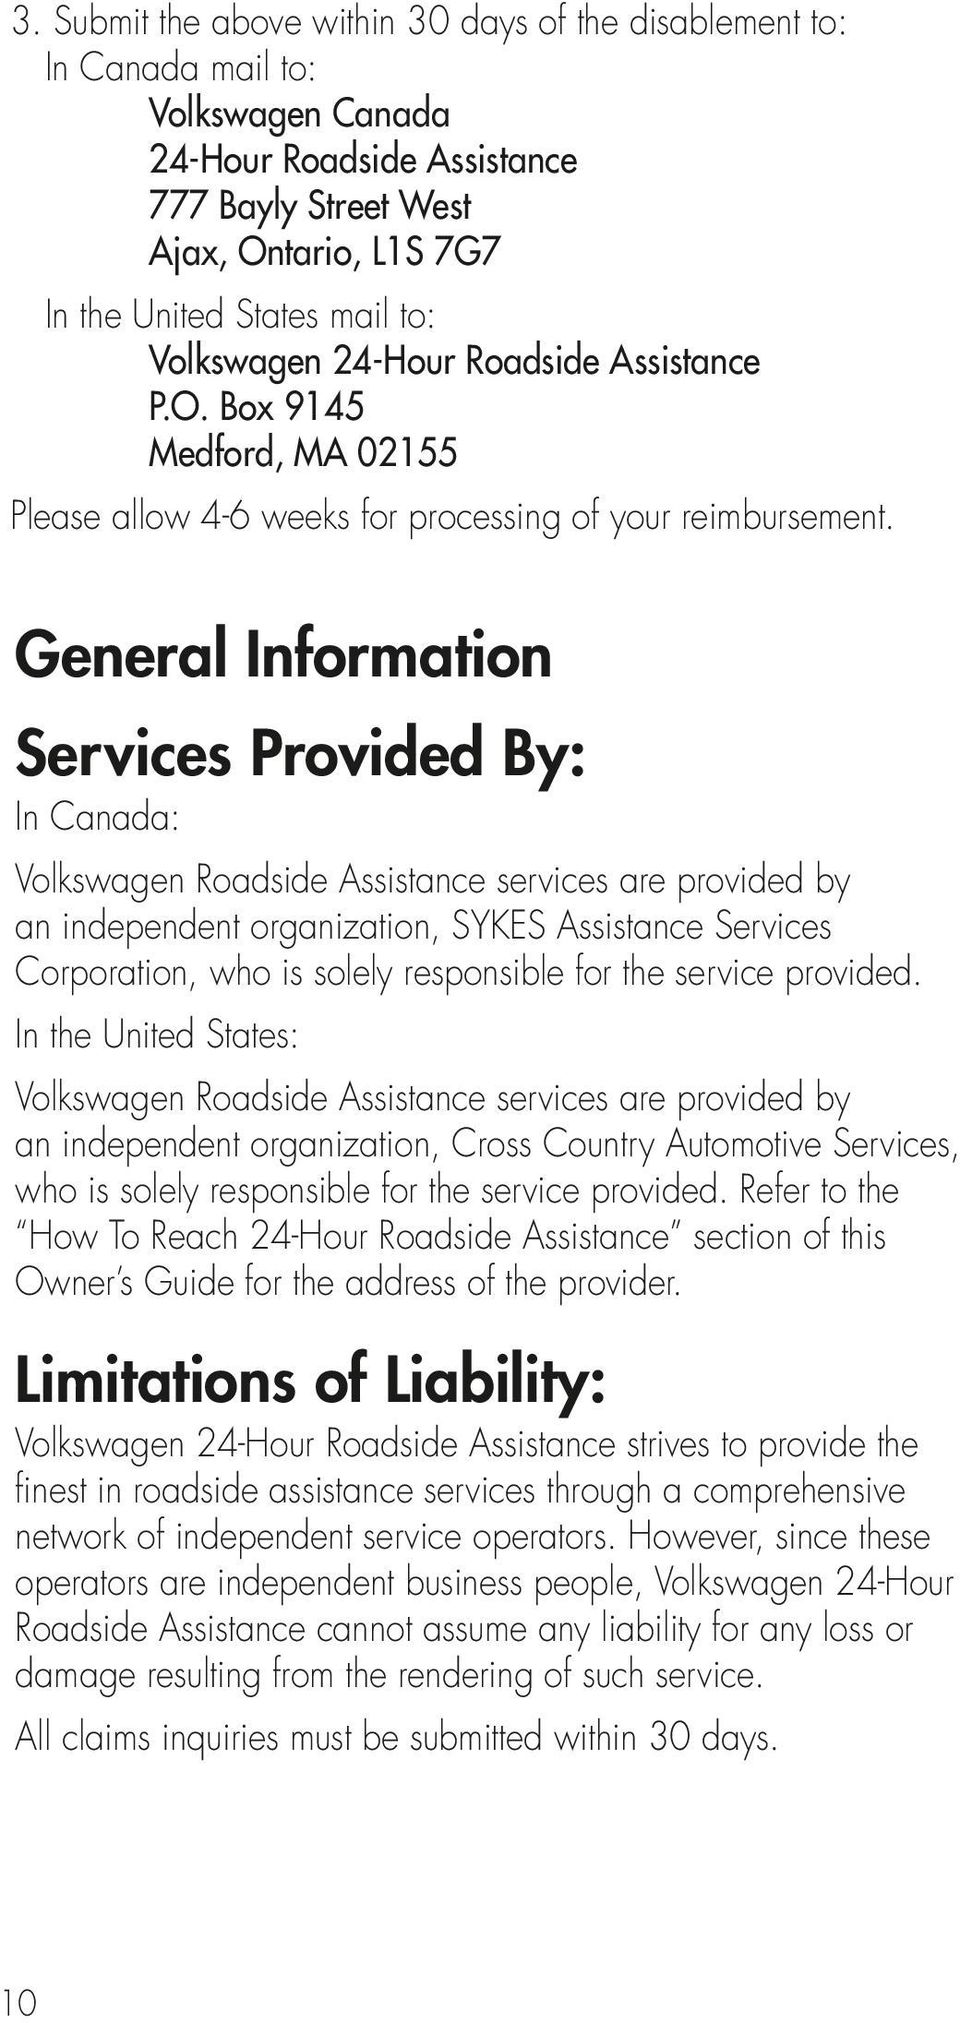 General Information Services Provided By: In Canada: Volkswagen Roadside Assistance services are provided by an independent organization, SYKES Assistance Services Corporation, who is solely